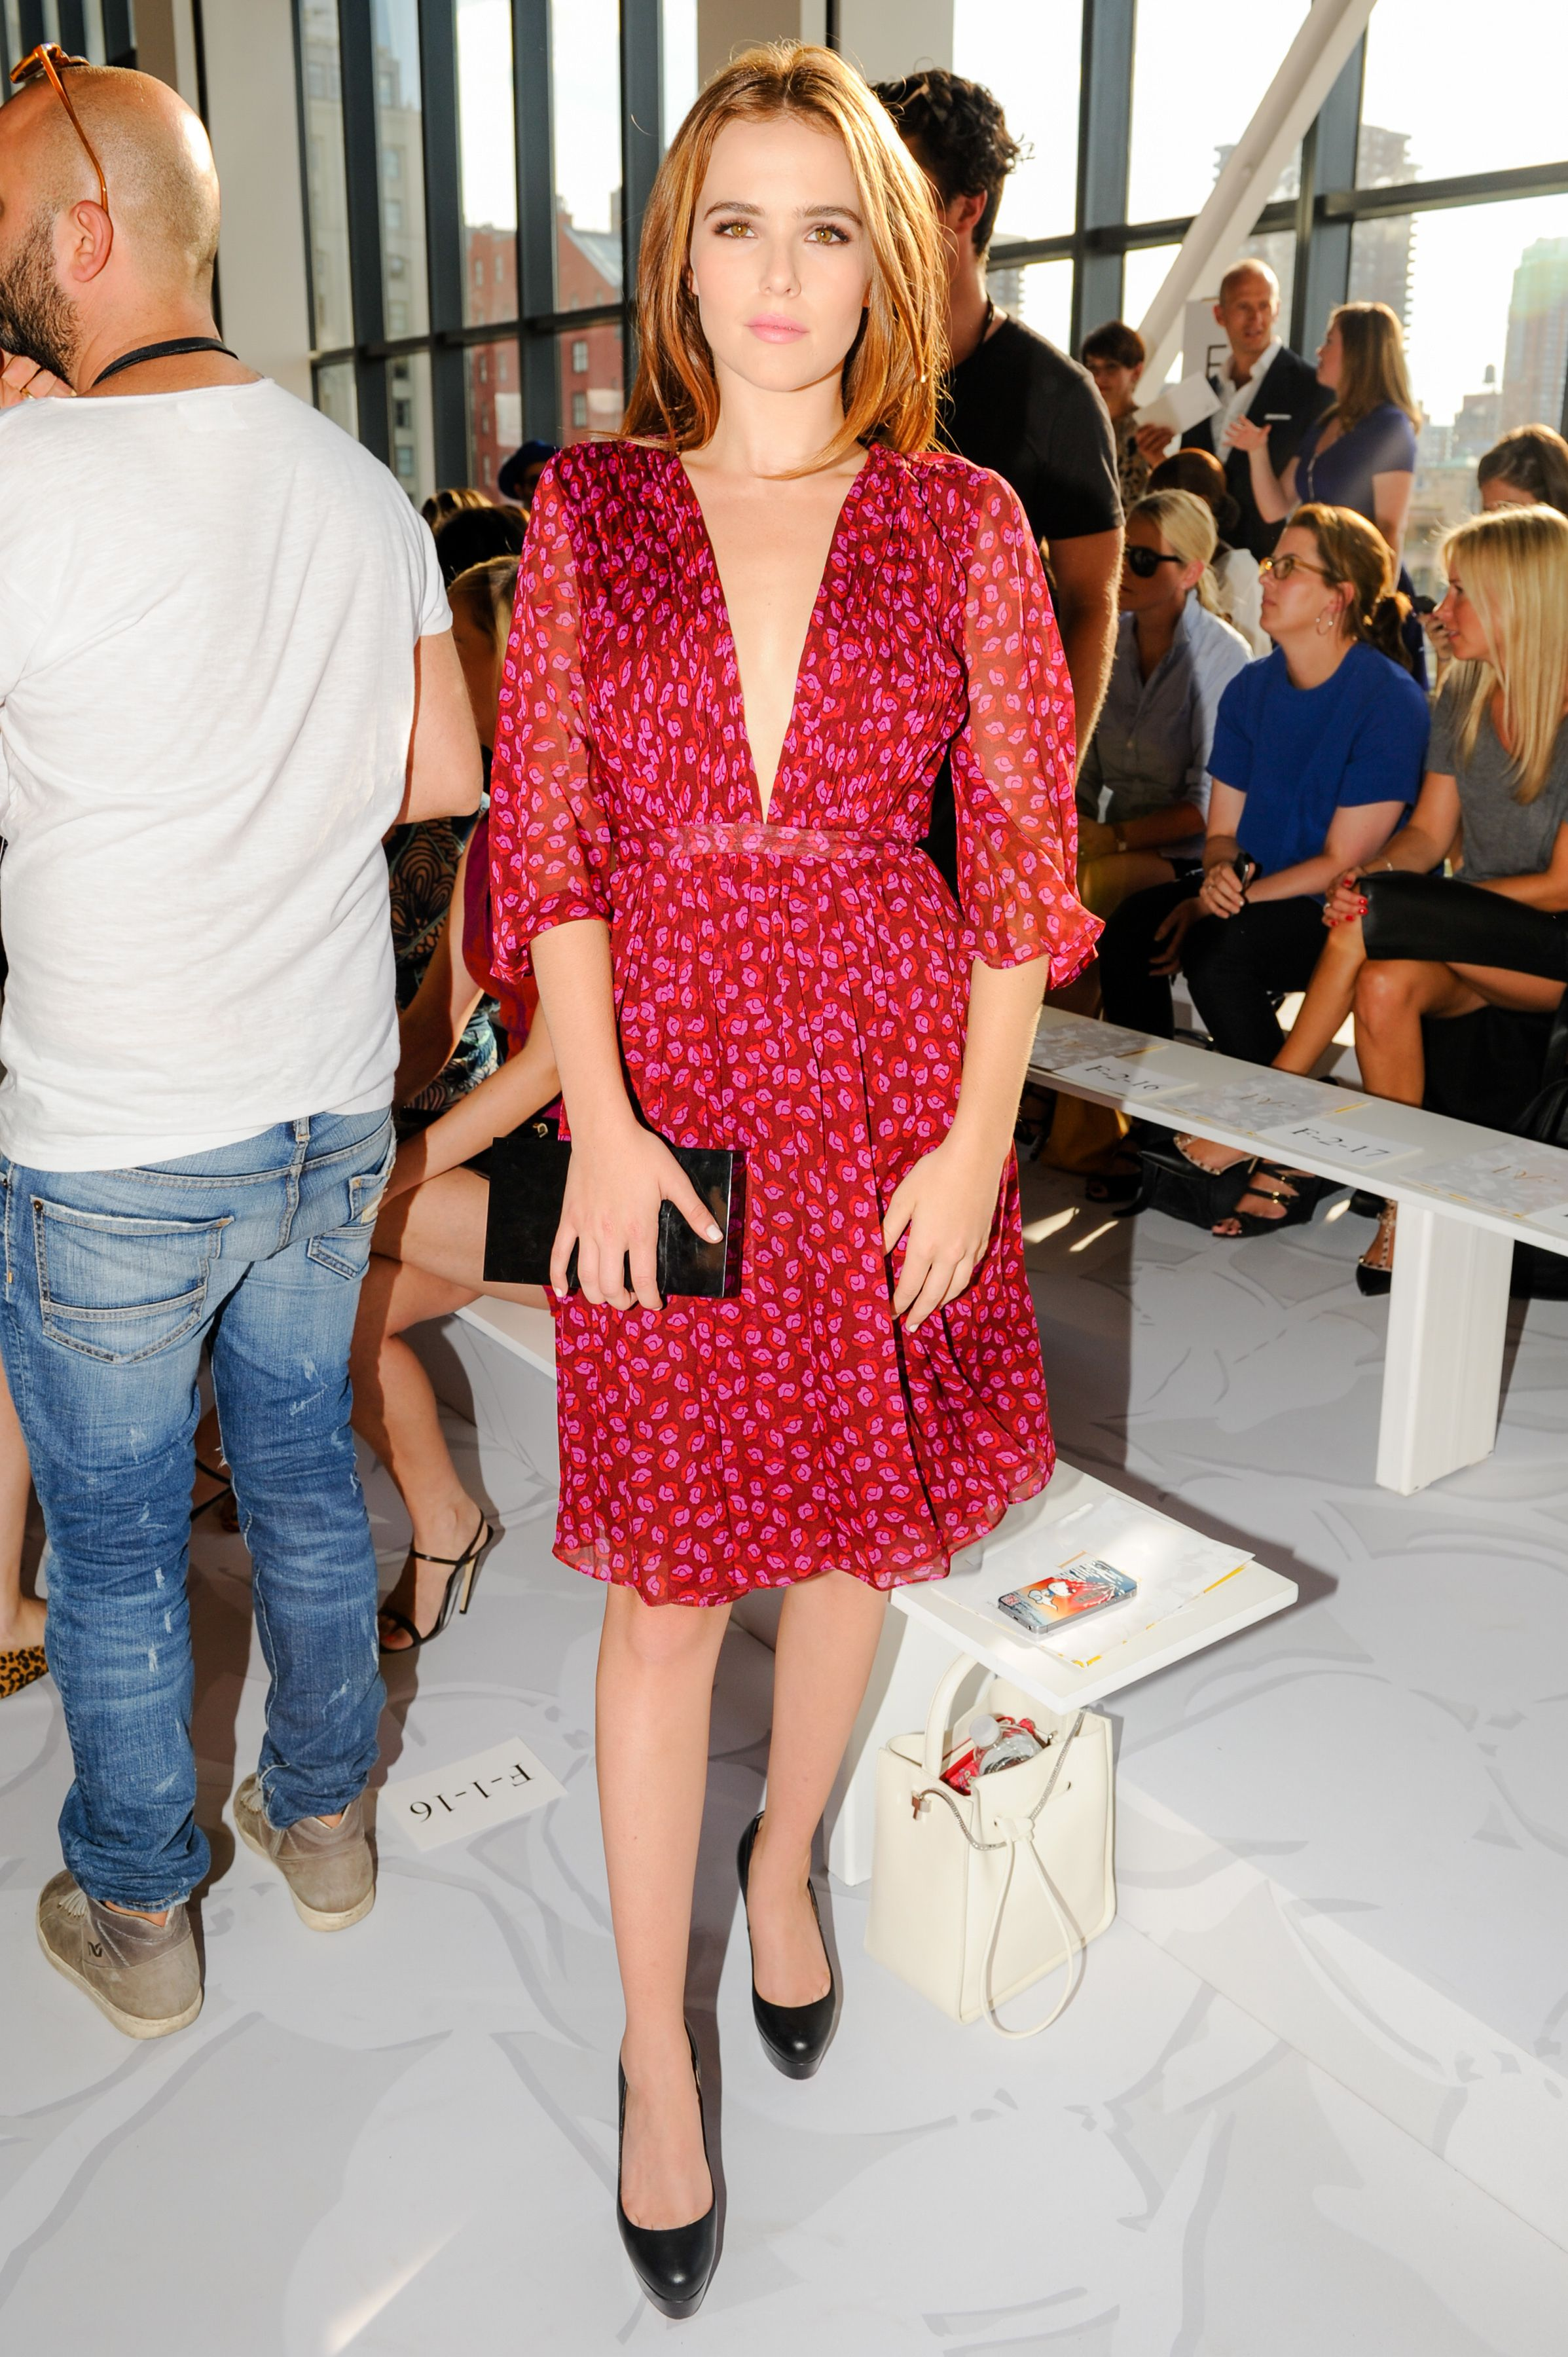 824d1f94d5b84 Zoey Deutch wearing the DVF Alicia Printed Chiffon Dress | Style ...